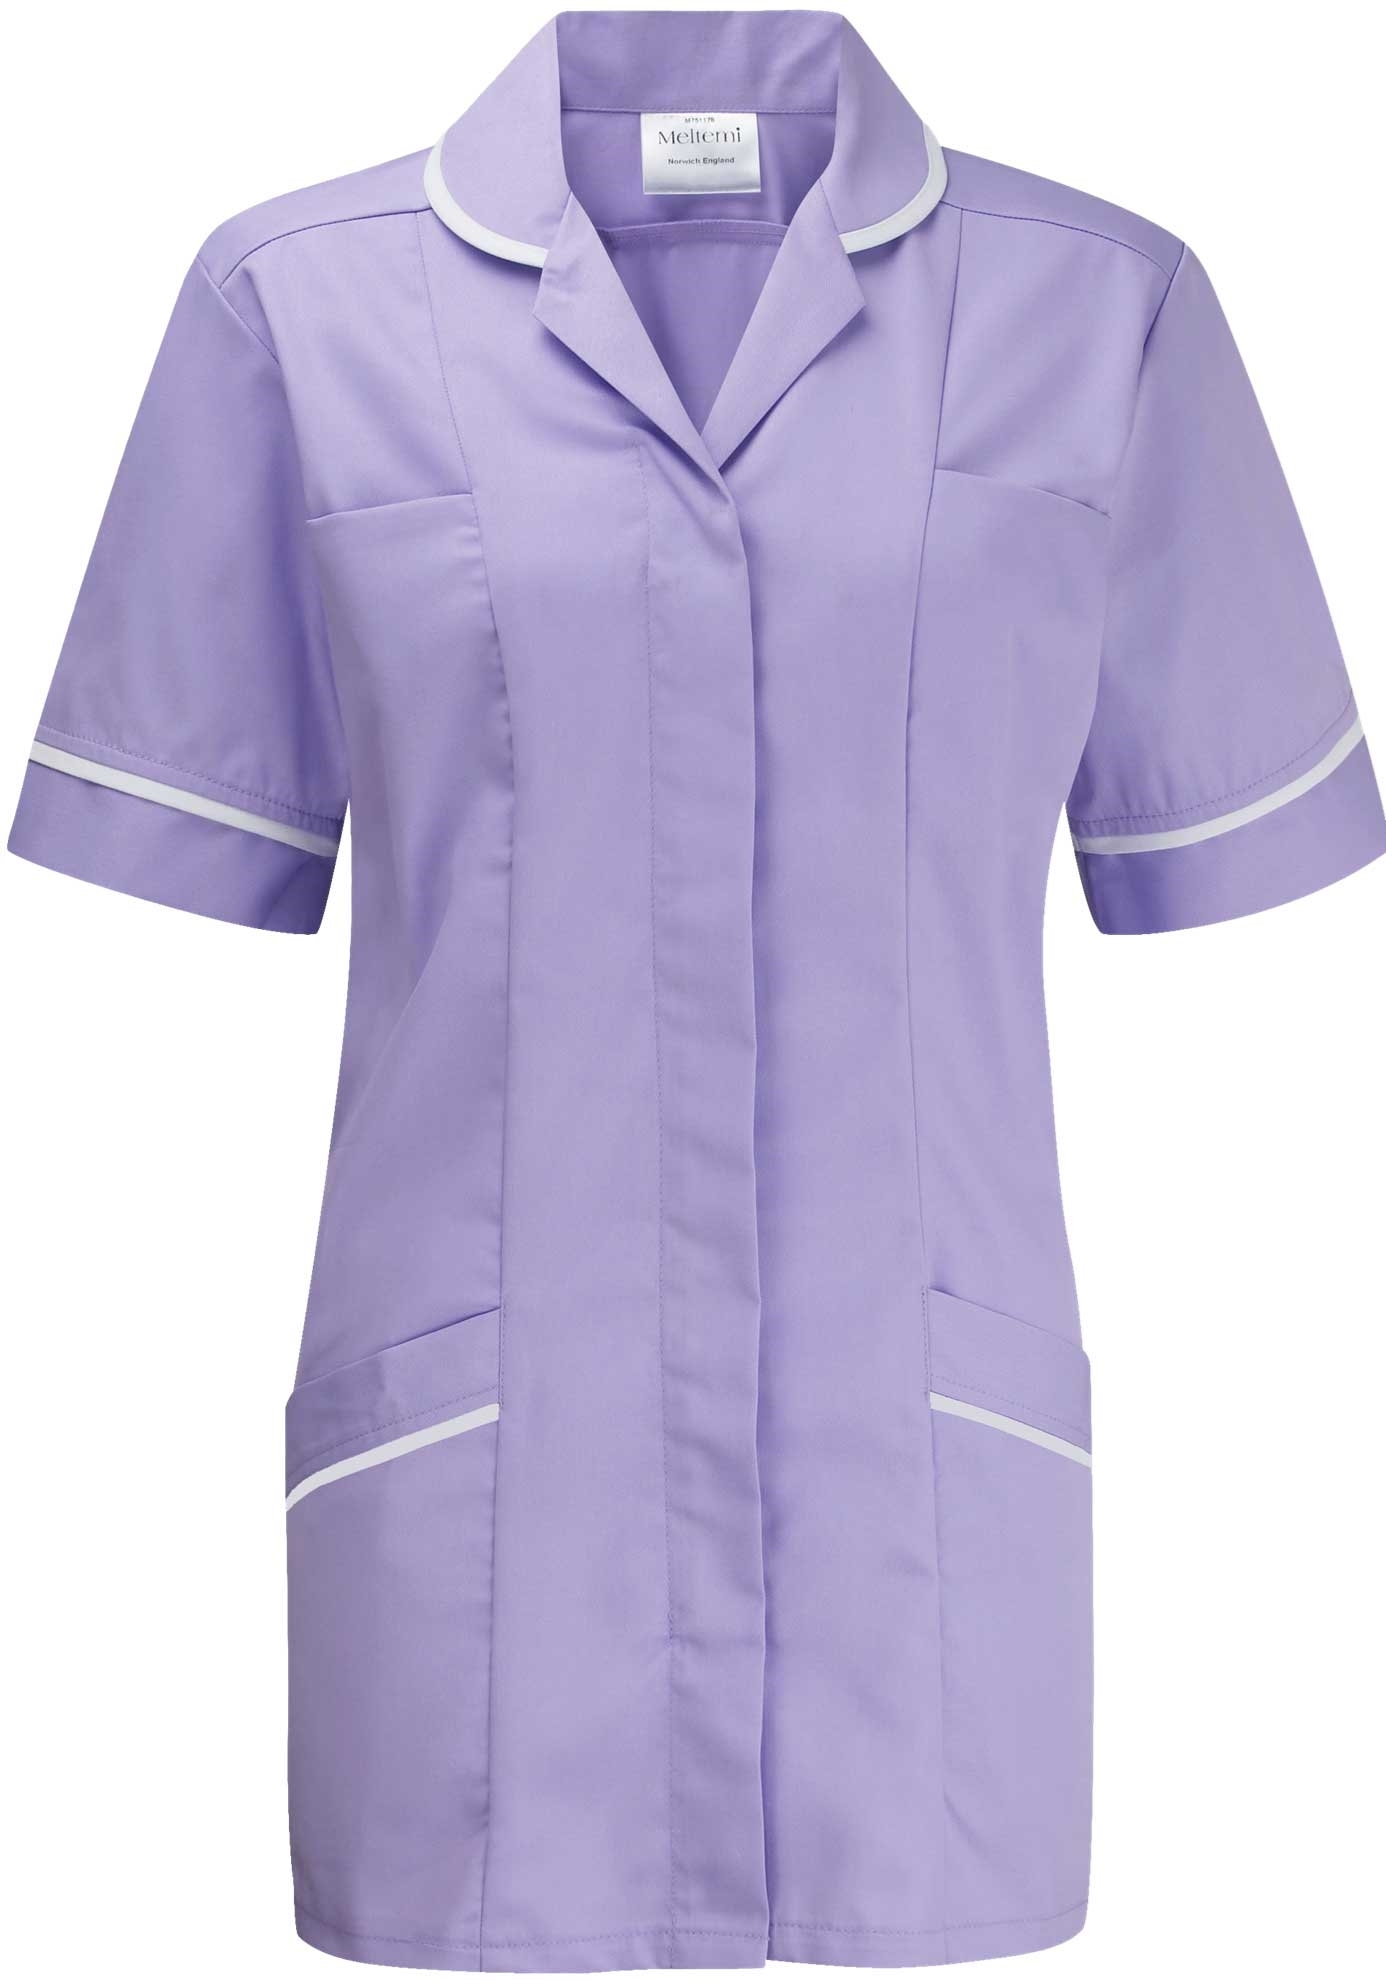 Picture of Flexi-Stretch Plain Tunic - Lilac/White